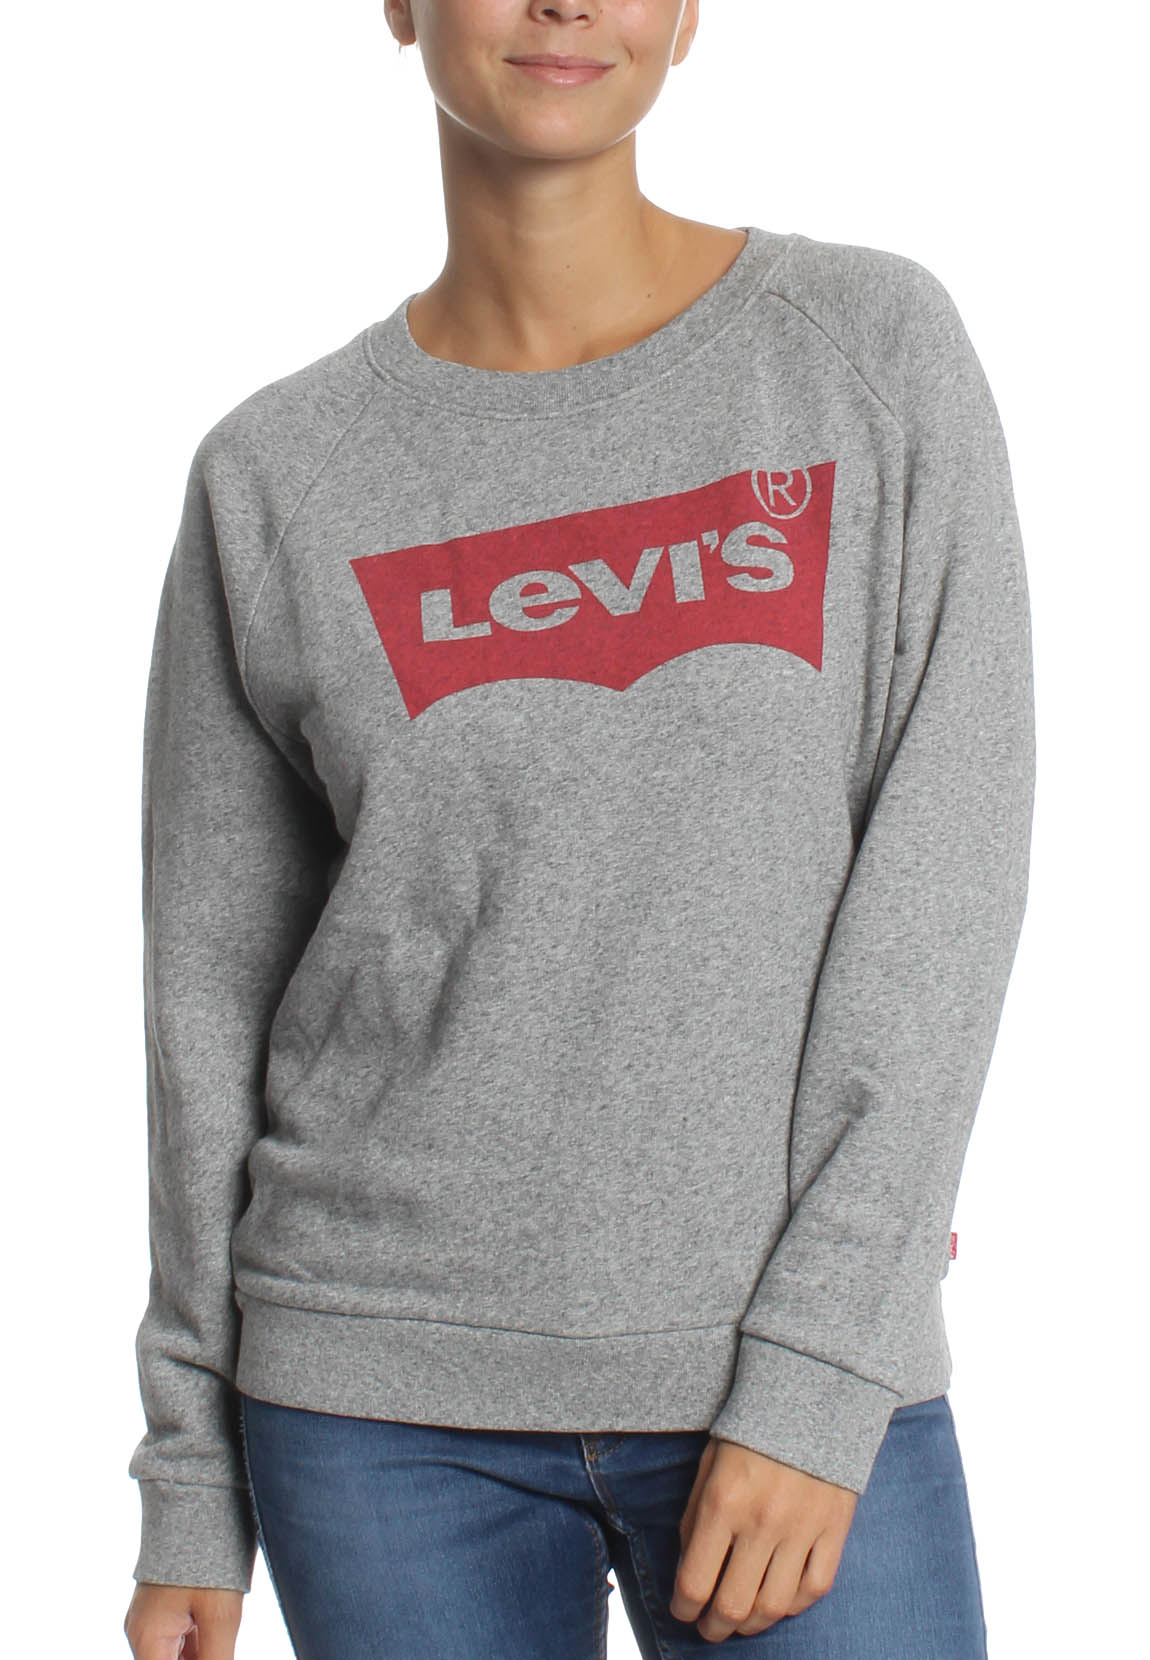 Levis Sweatshirt Women RELAXED GRAPHIC CREW 29717-0000 Grau